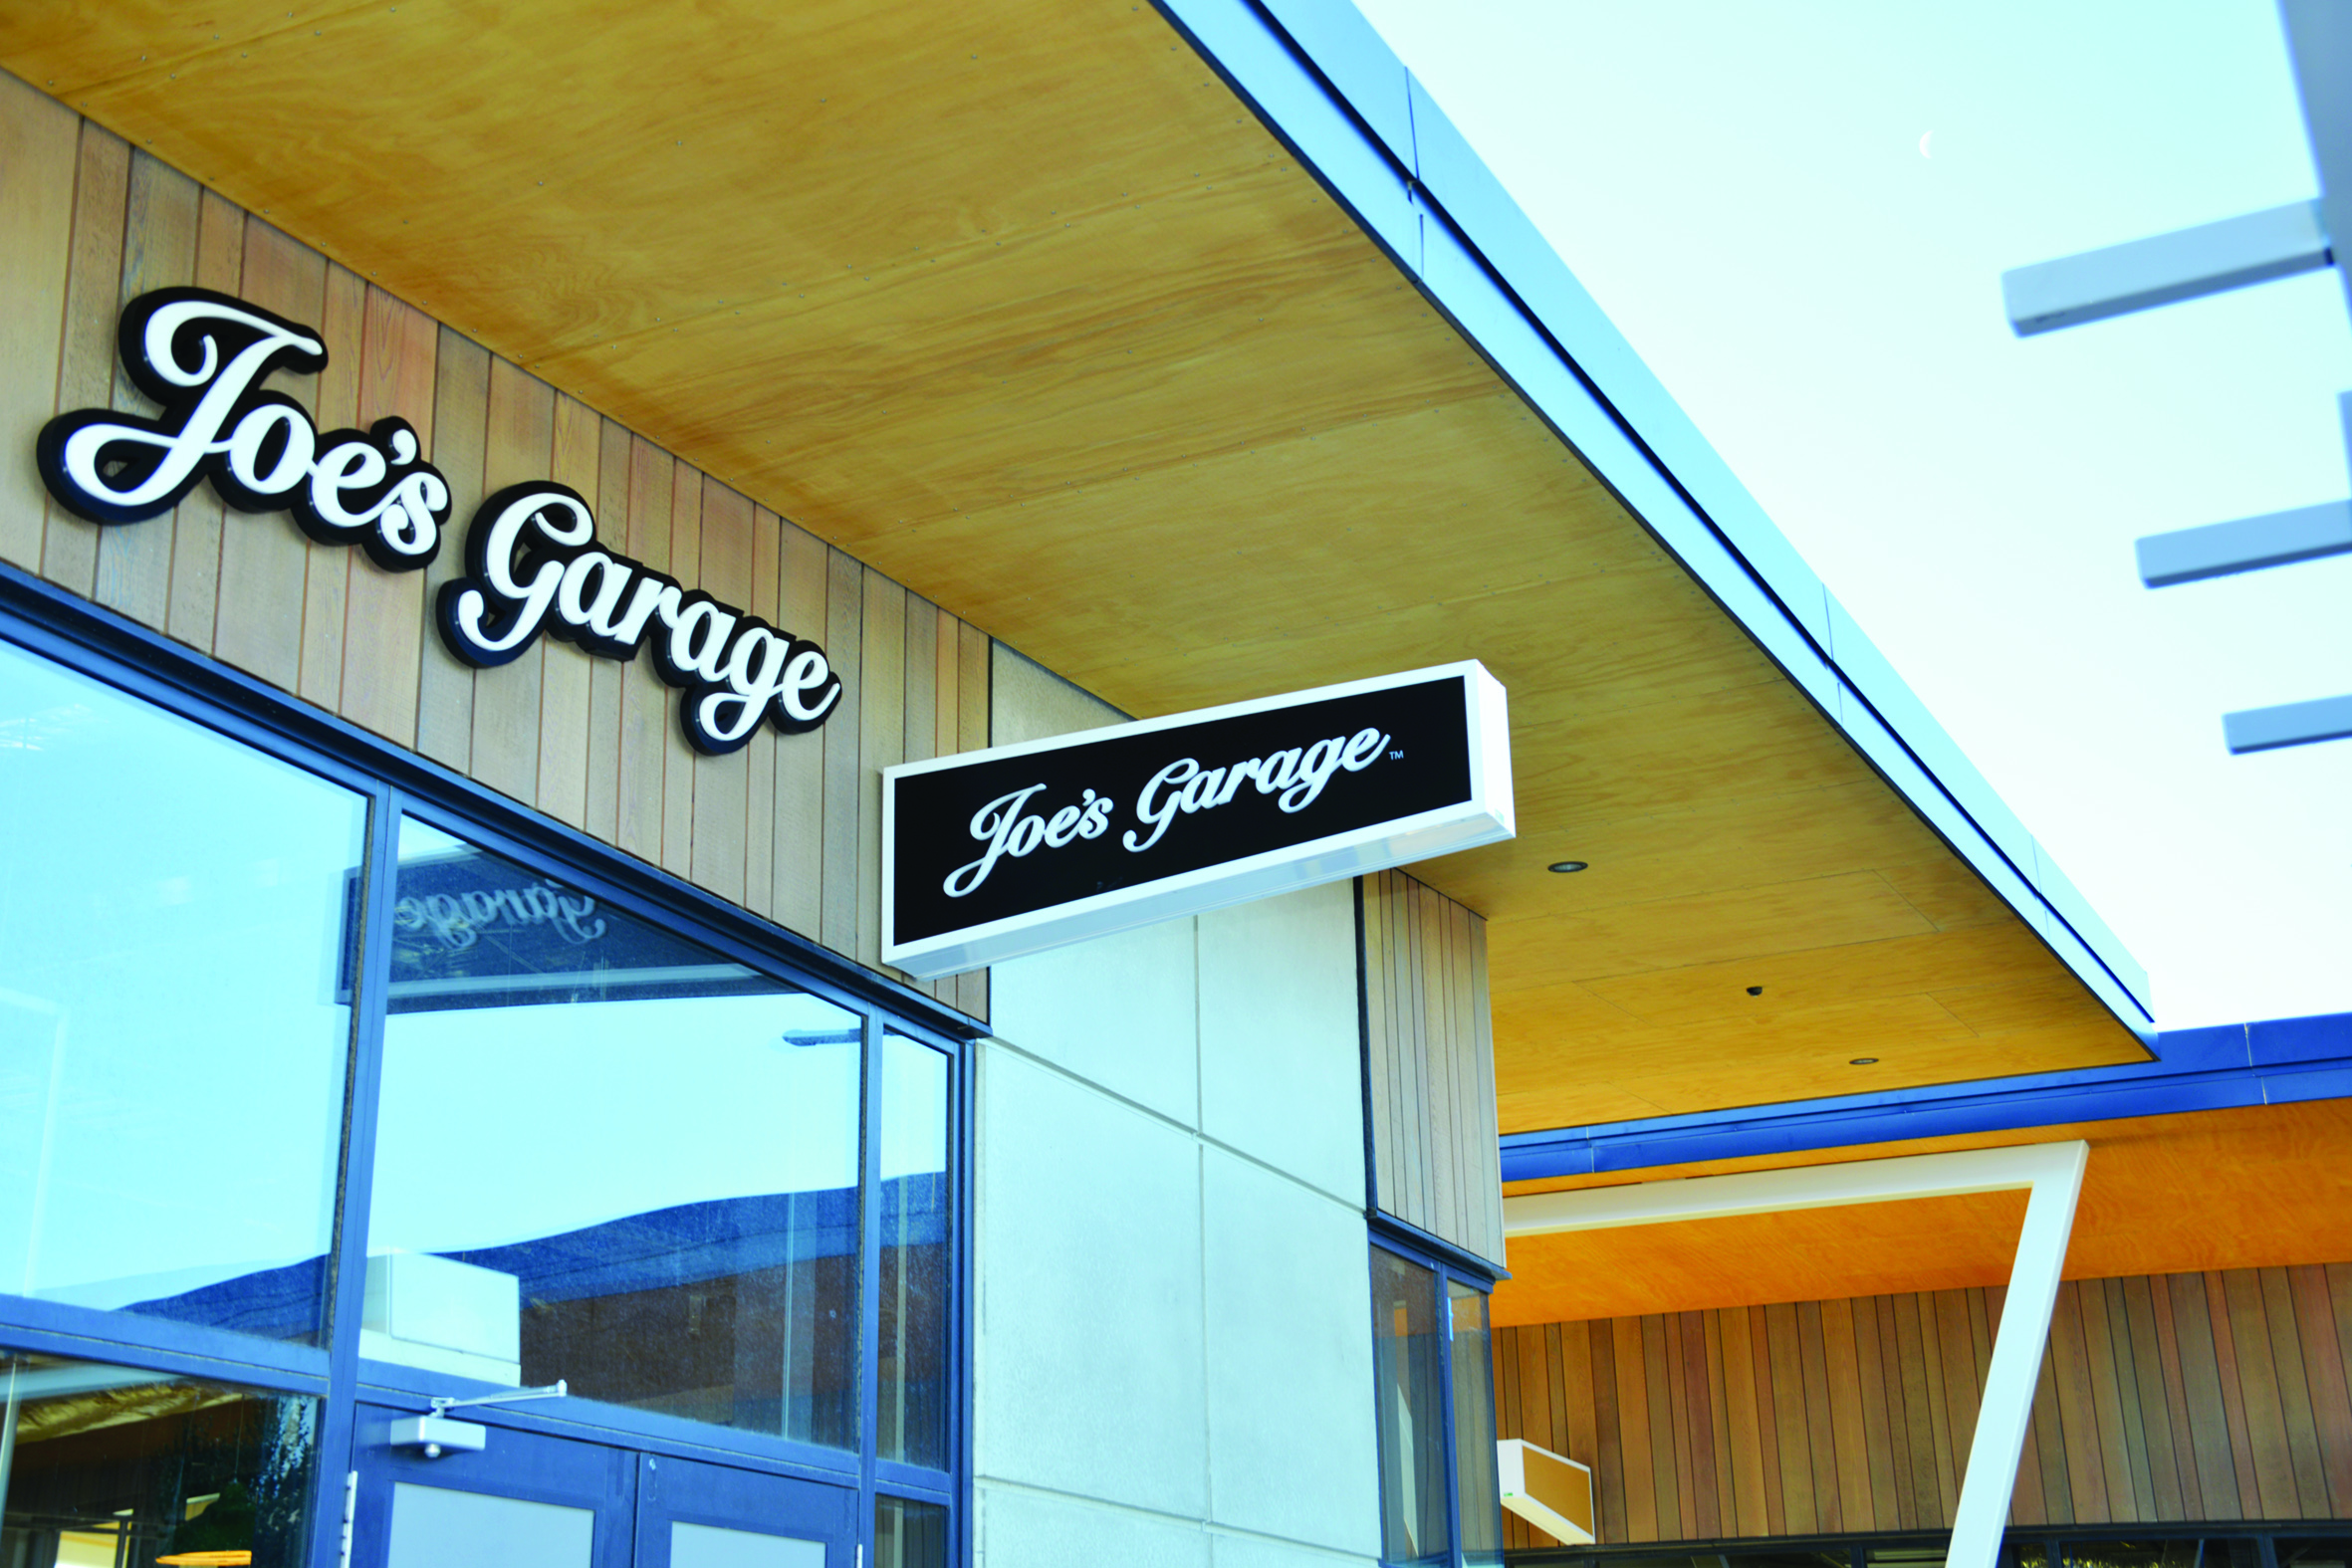 After seaside success with Joe's Garage in Sumner owner Anton Matthews looked to take the popular café to new heights with his next project.